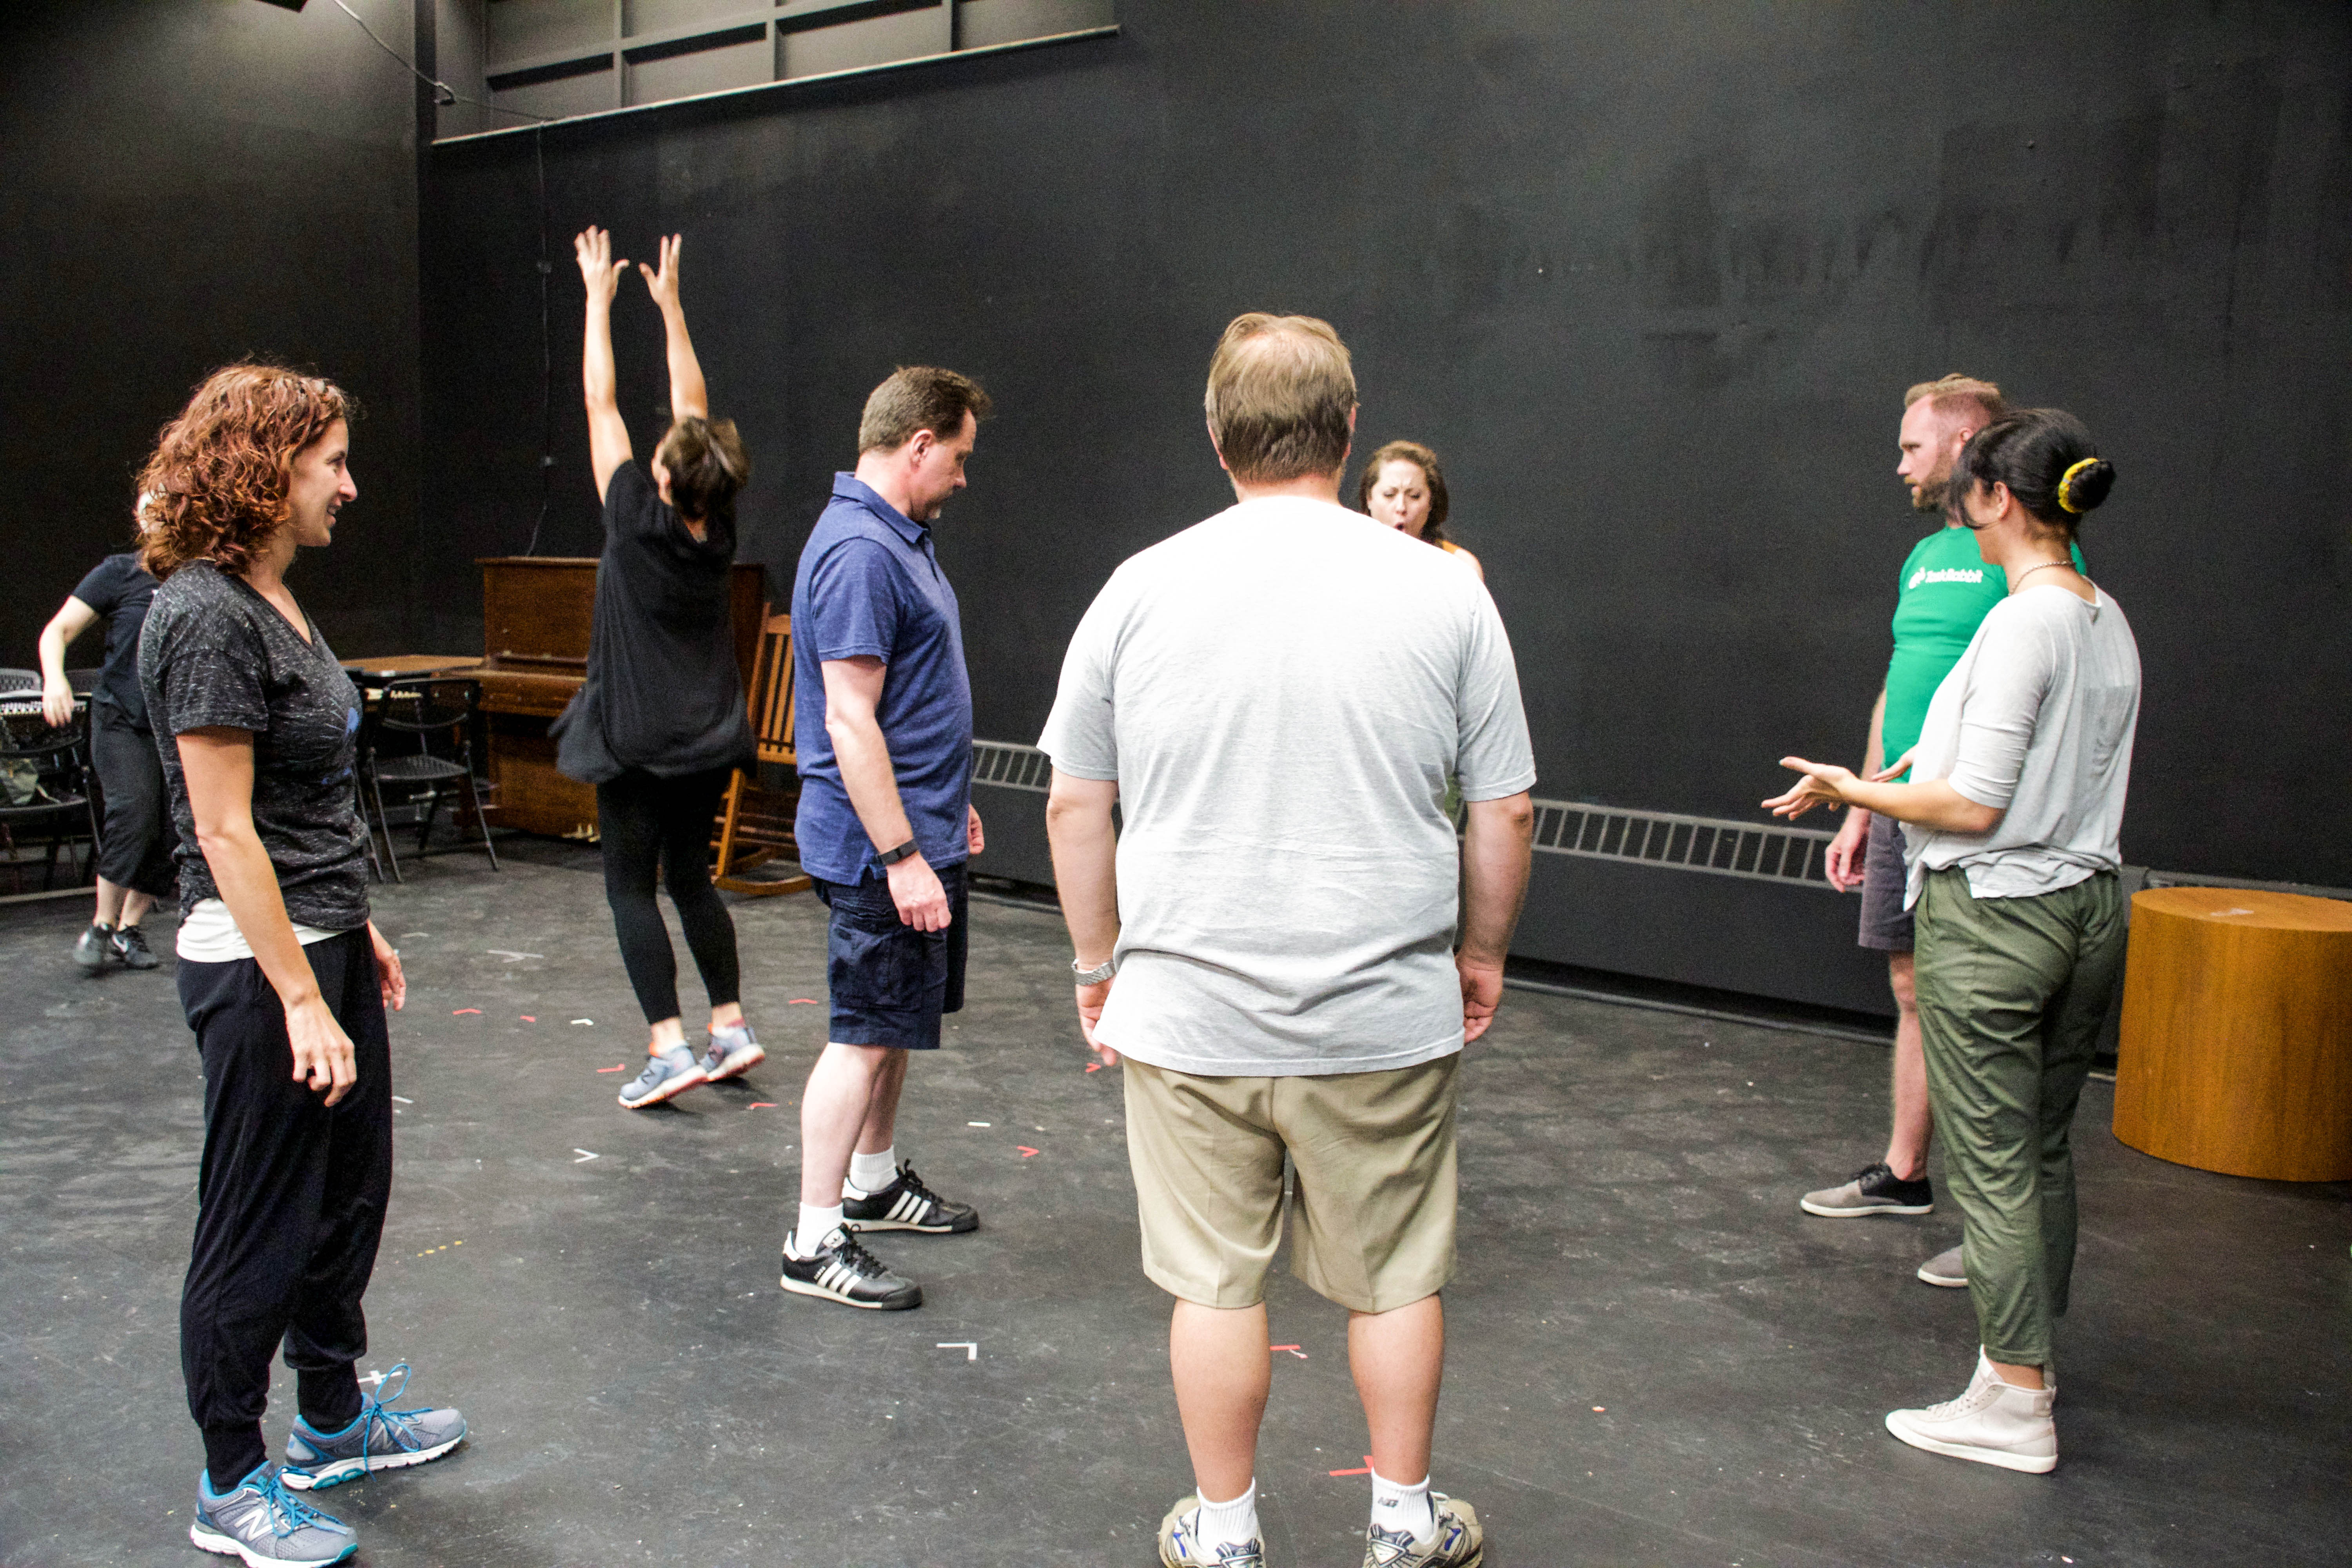 Actors in a rehearsal room standing in a circle working on movement